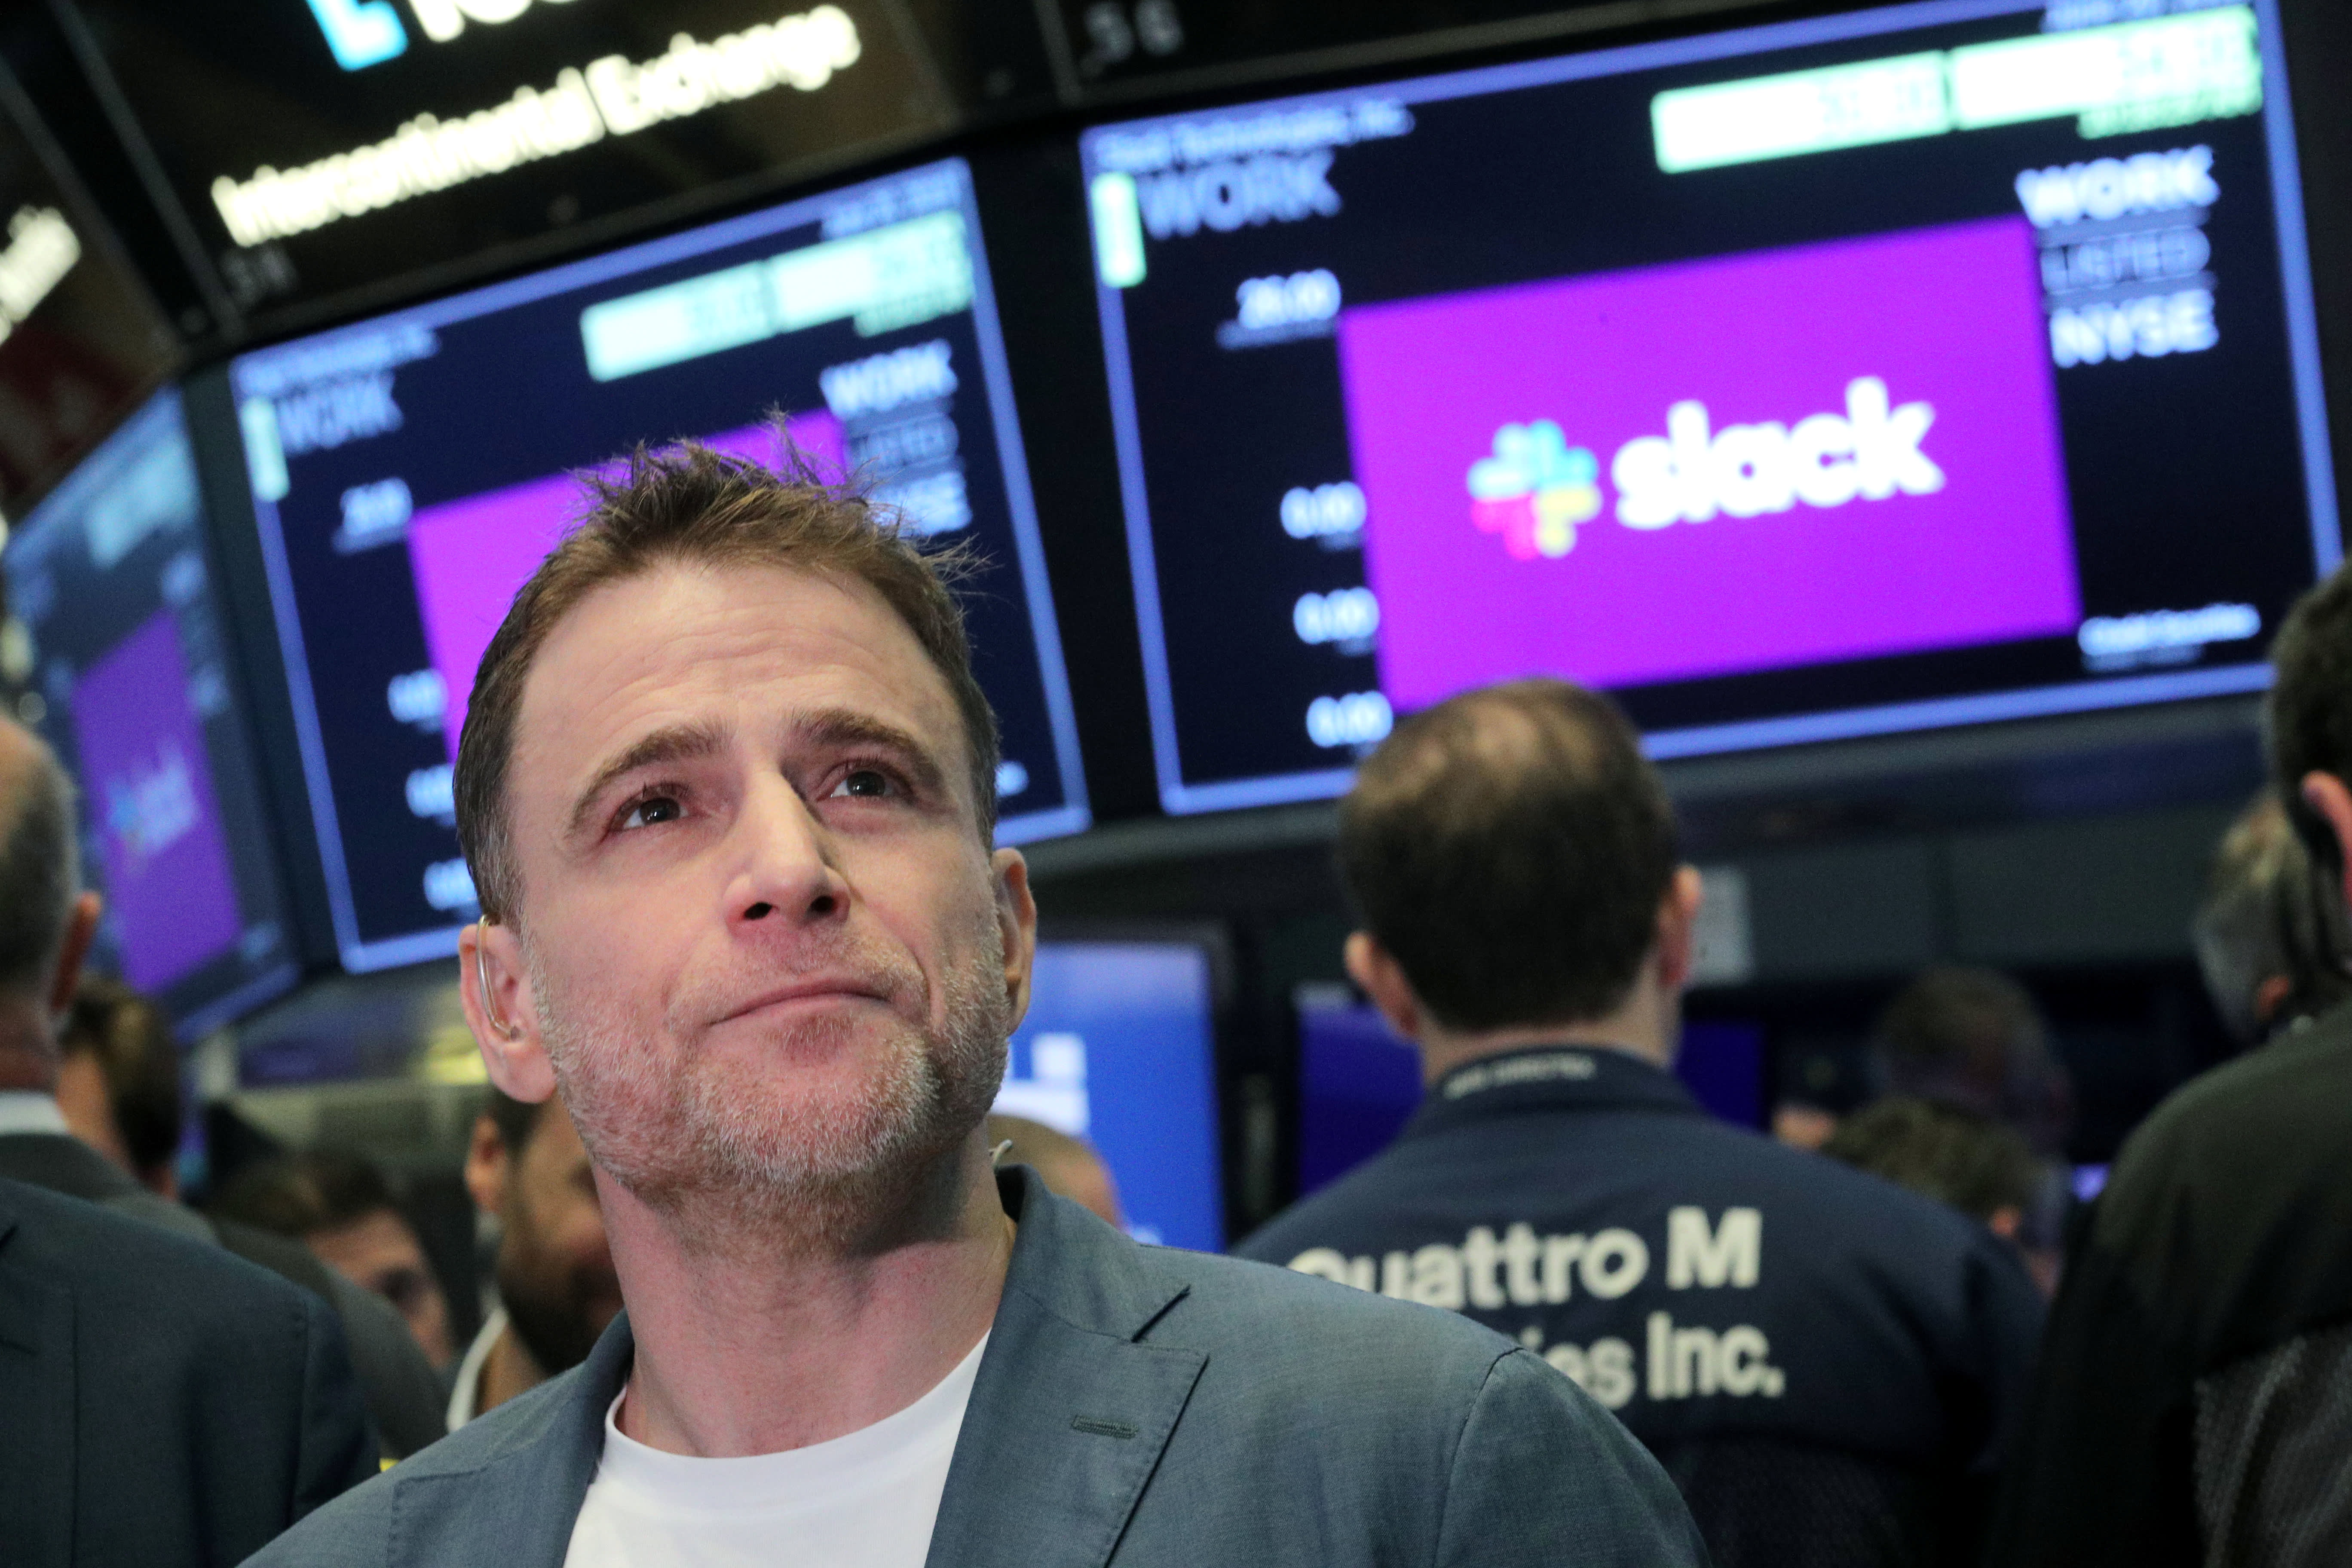 Slack shares surge more than 50% over reference price in market debut